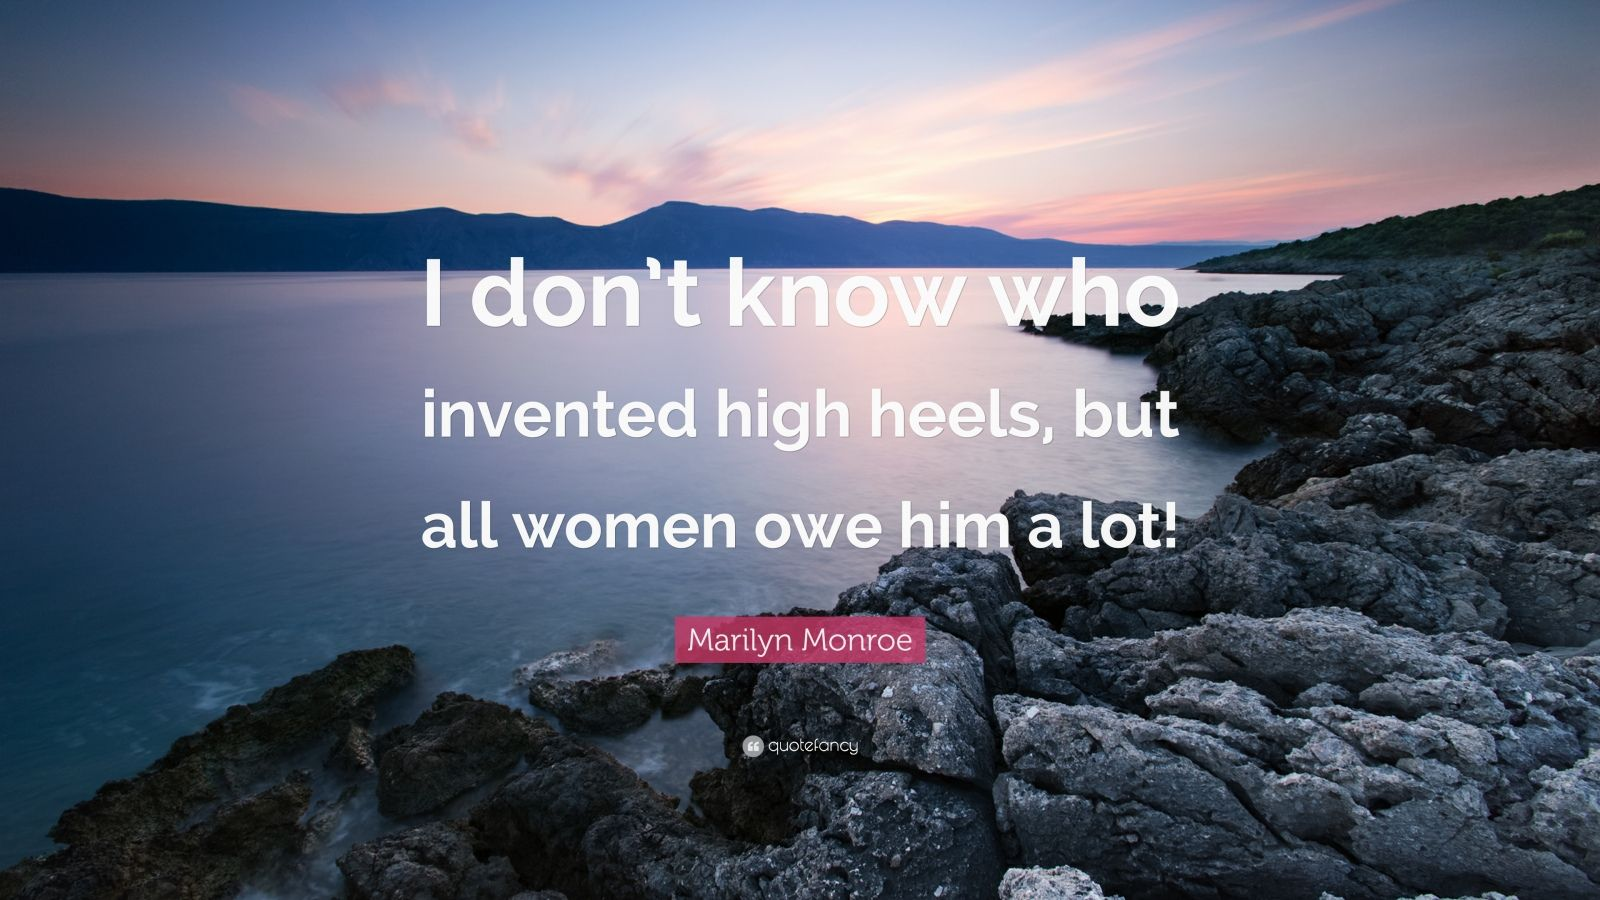 """Marilyn Monroe Quote: """"I don't know who invented high heels, but all women owe him a lot!"""""""